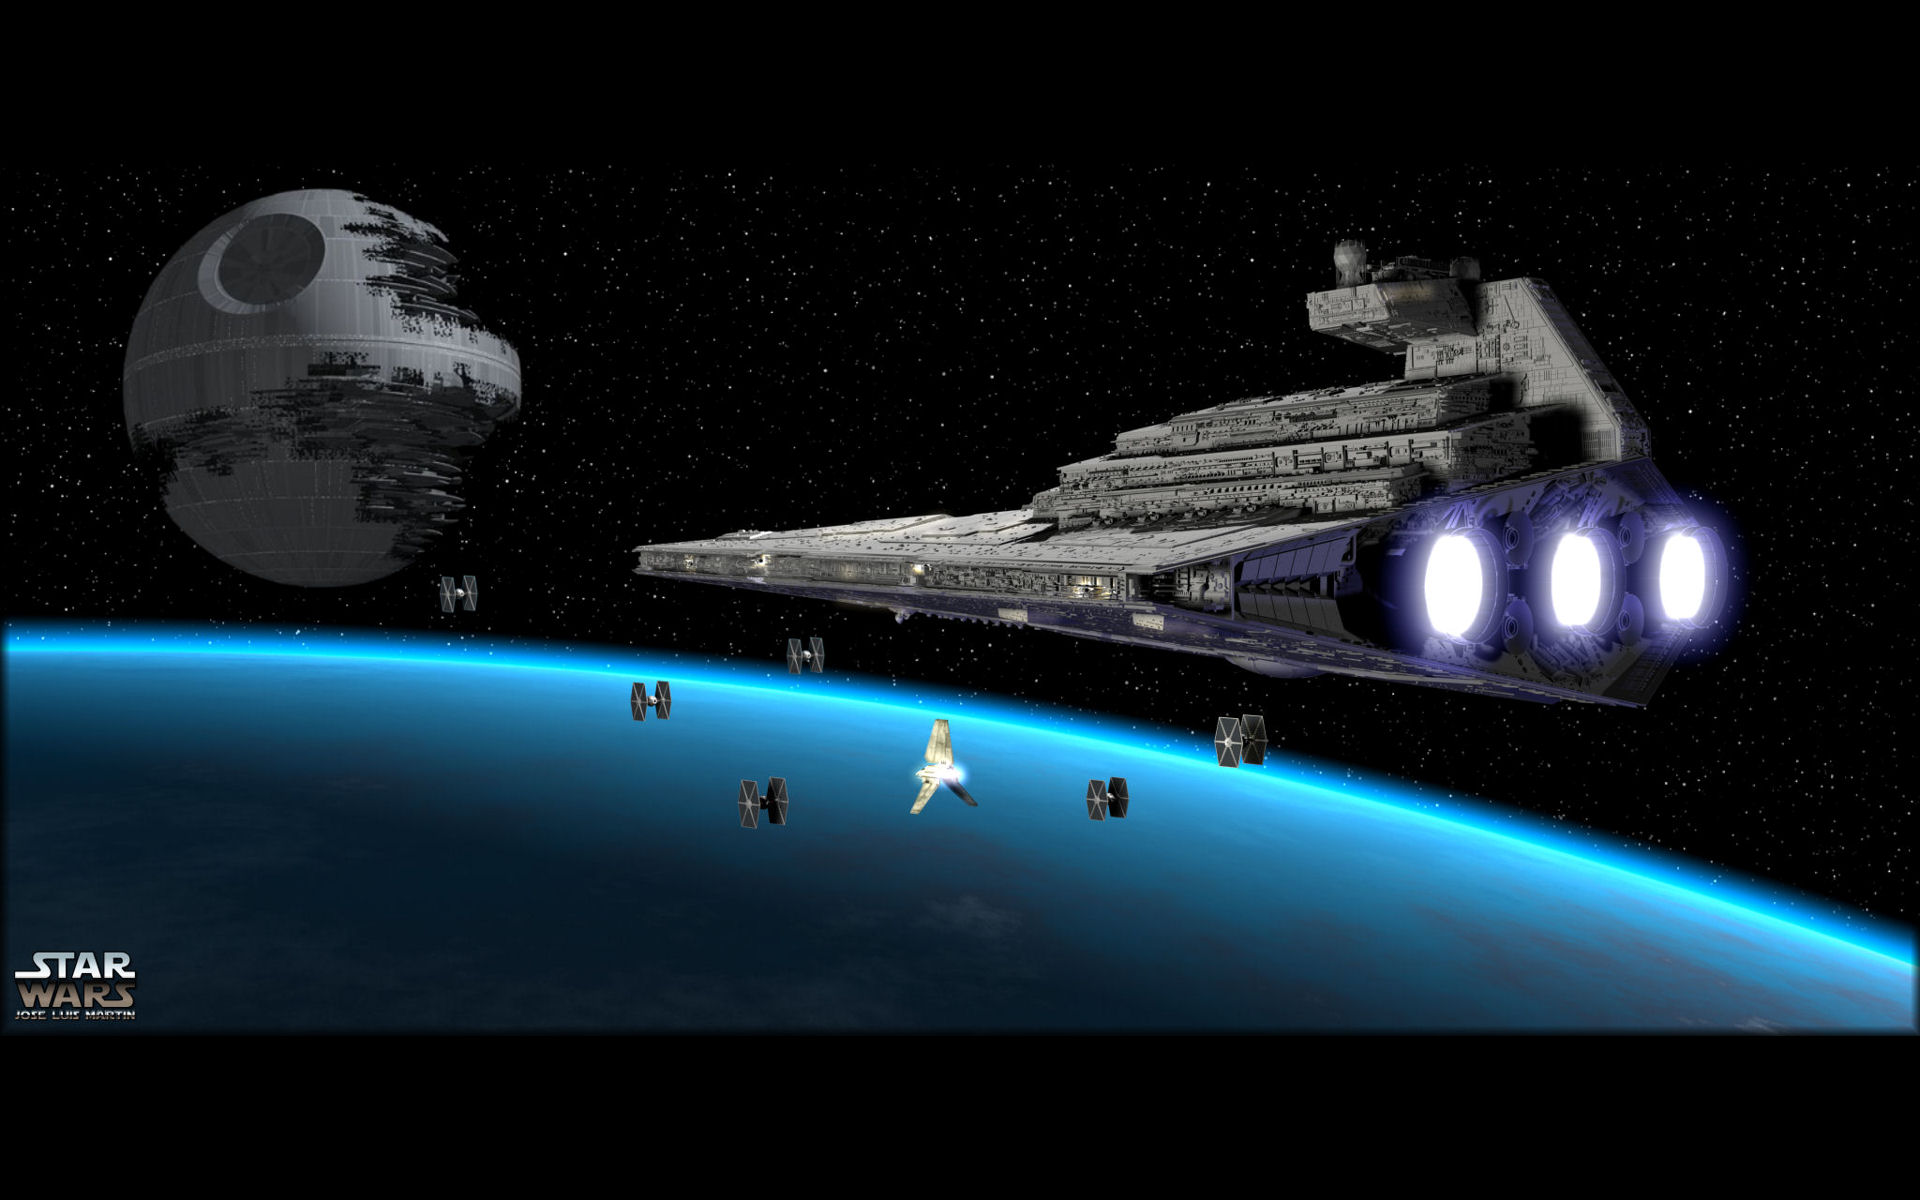 1920x1200 Star Wars desktop PC and Mac wallpaper 1920x1200